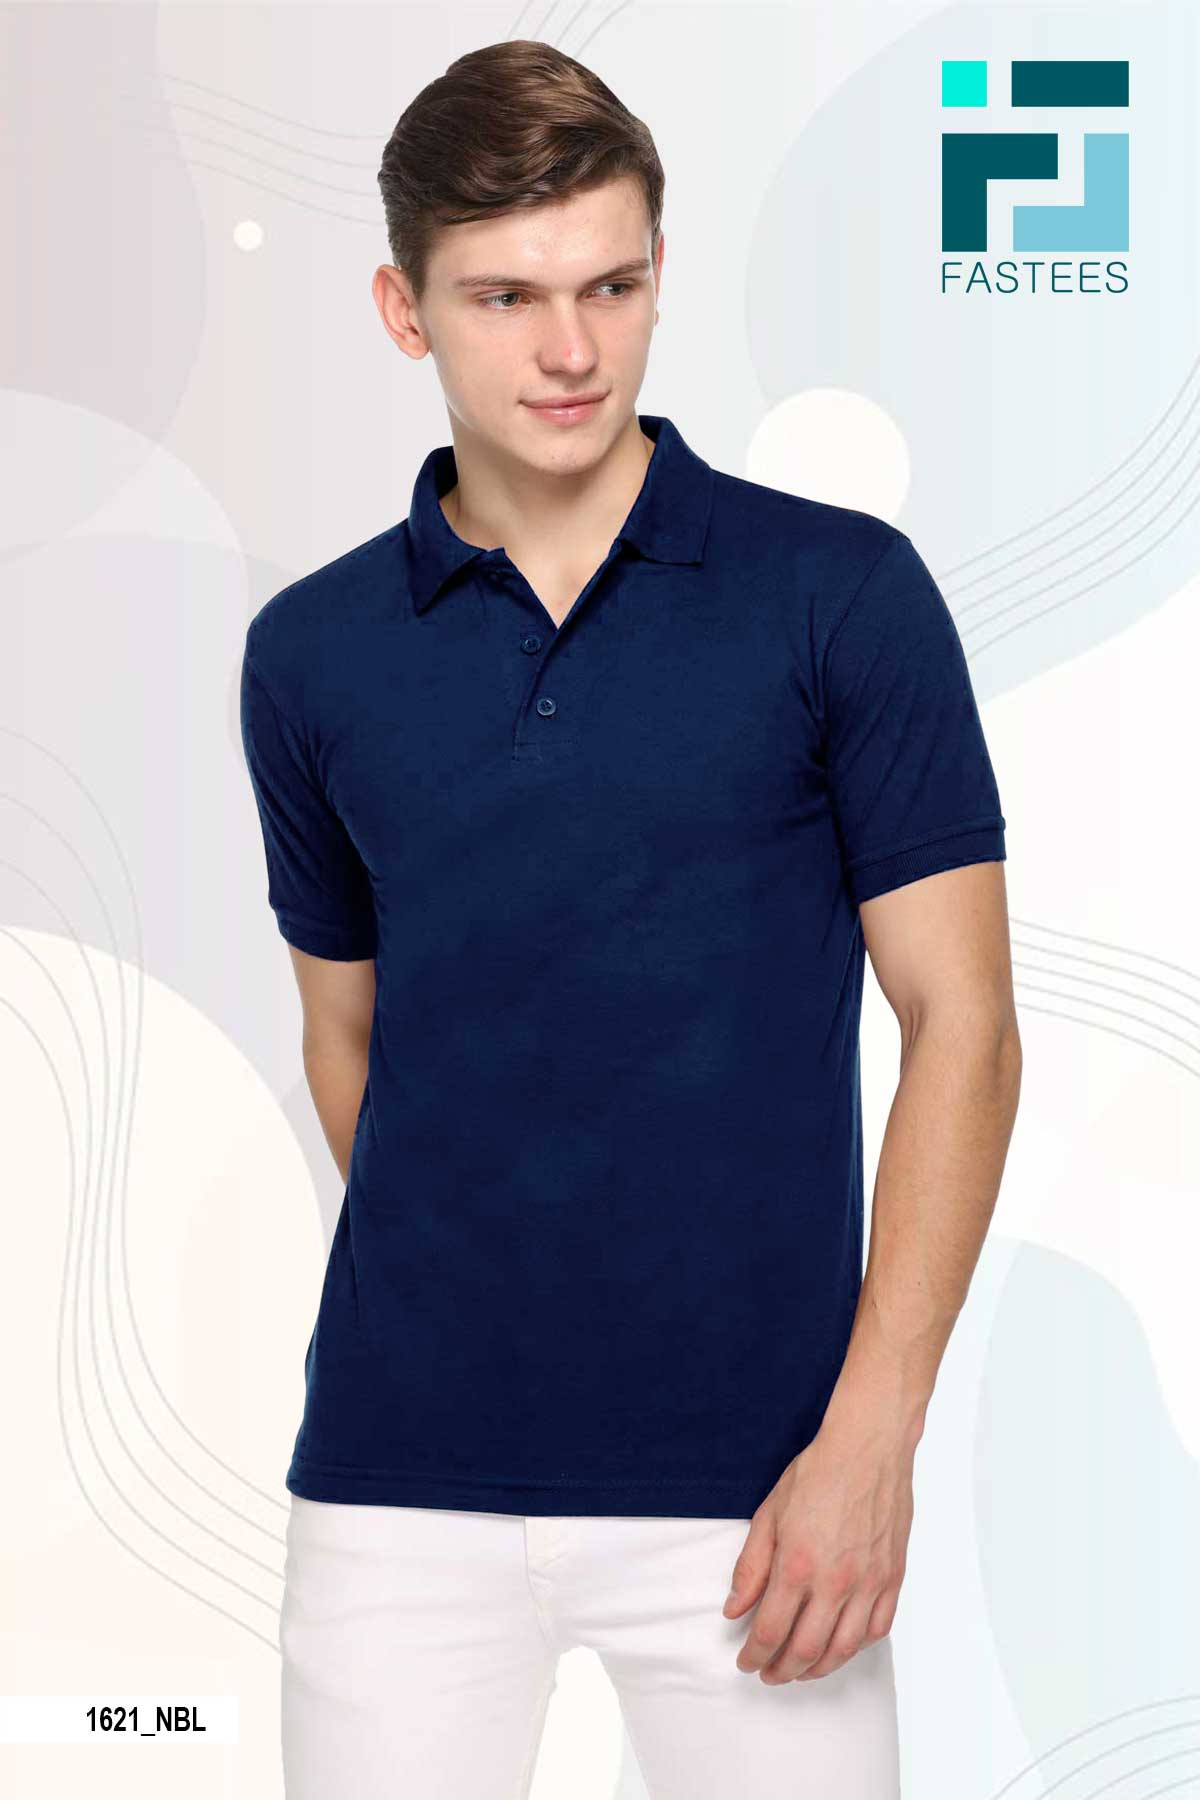 Polo T-Shirts Fastees